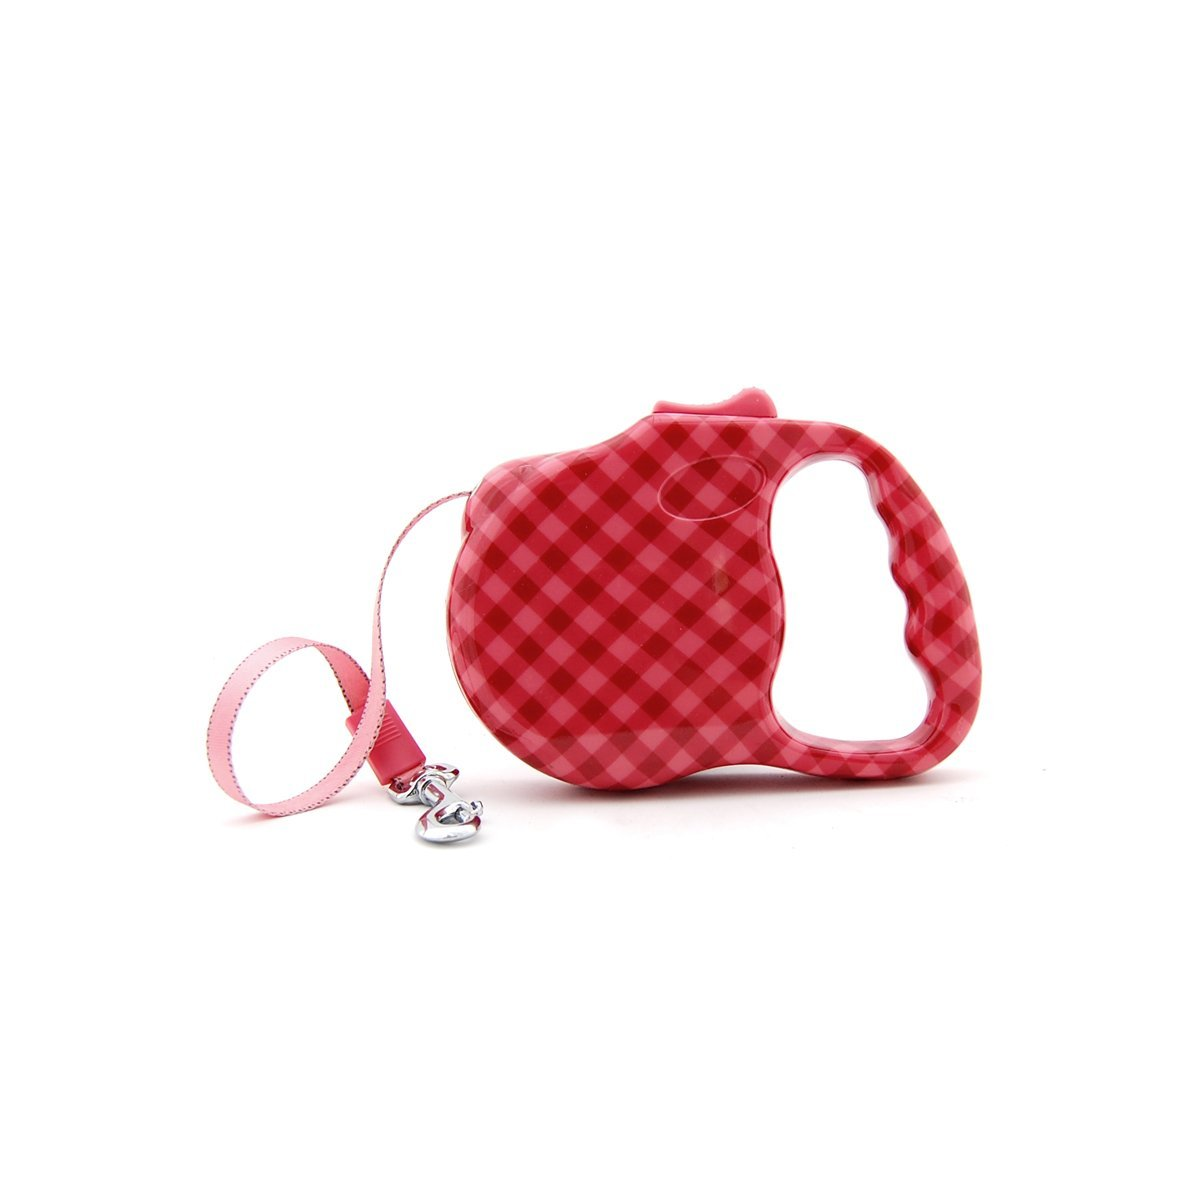 Bellus Retractable Dog Leash Print Great for Small Dogs up to 30 lbs. Red Pink